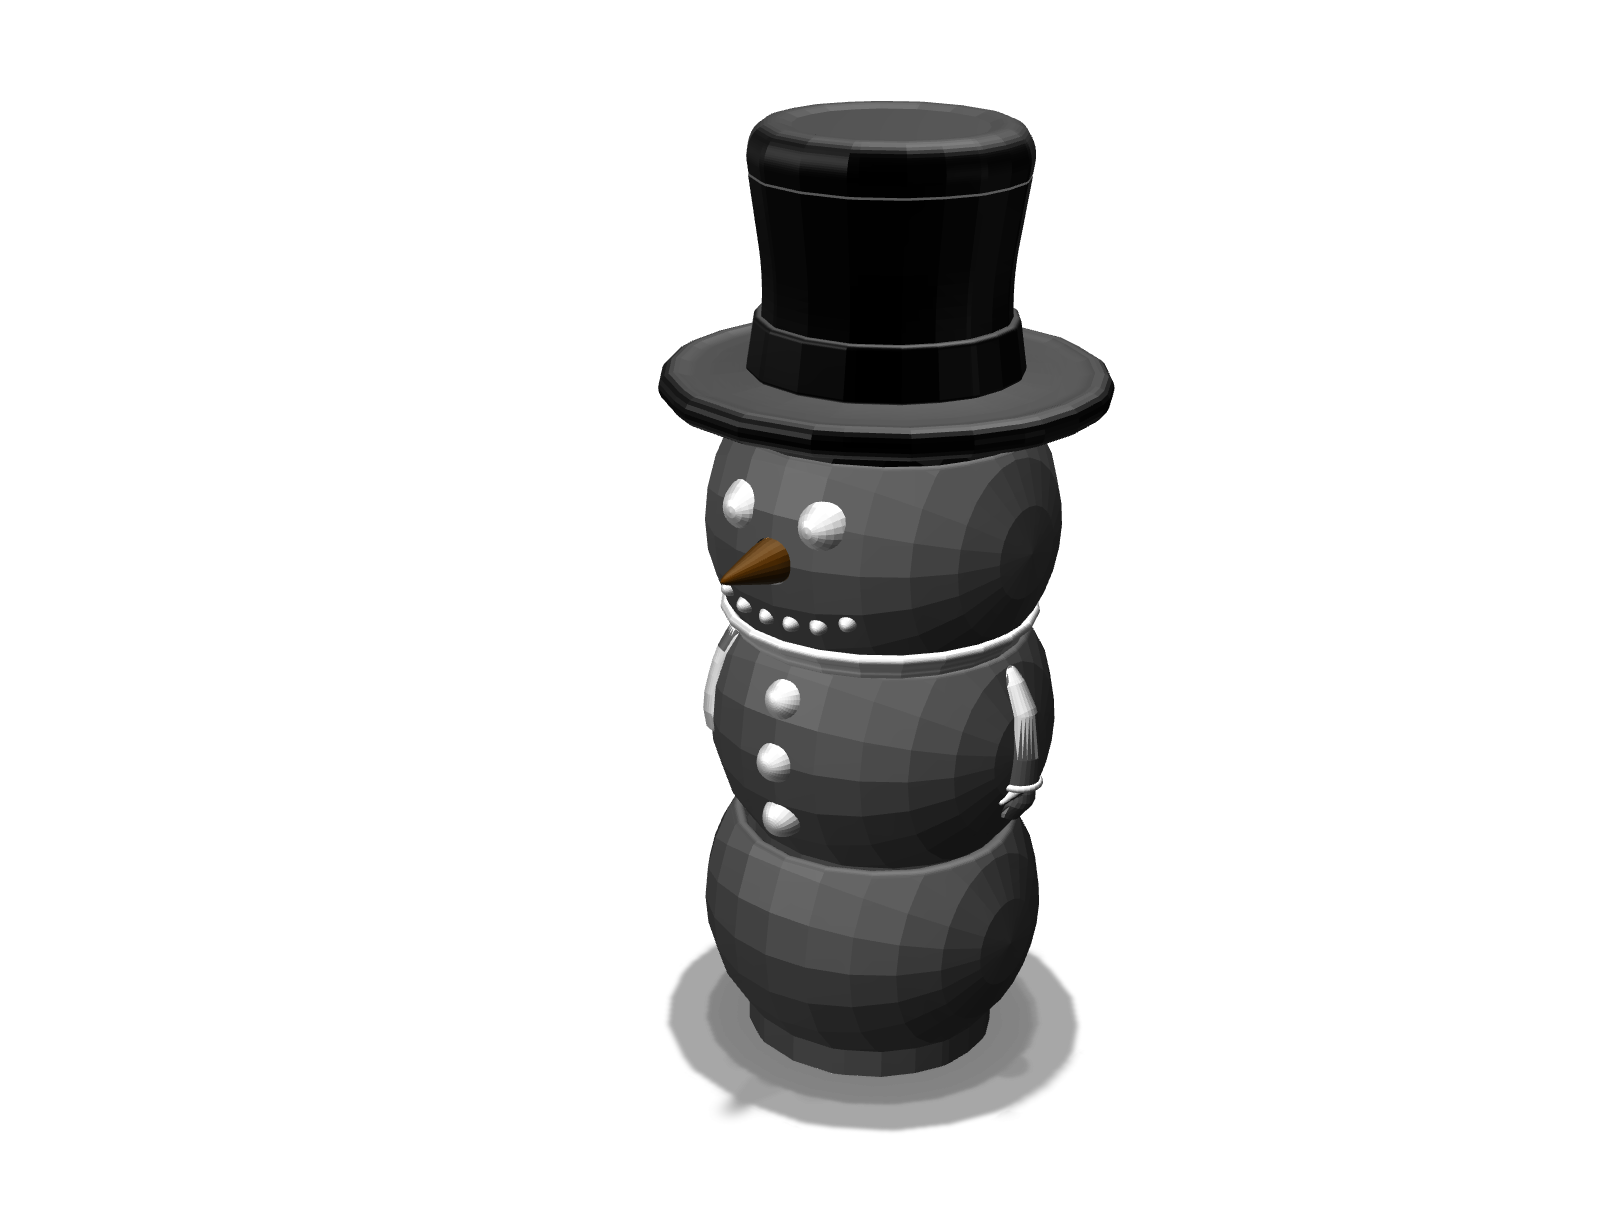 SNOW MAN MUGs - 3D design by jack.stone Dec 20, 2017